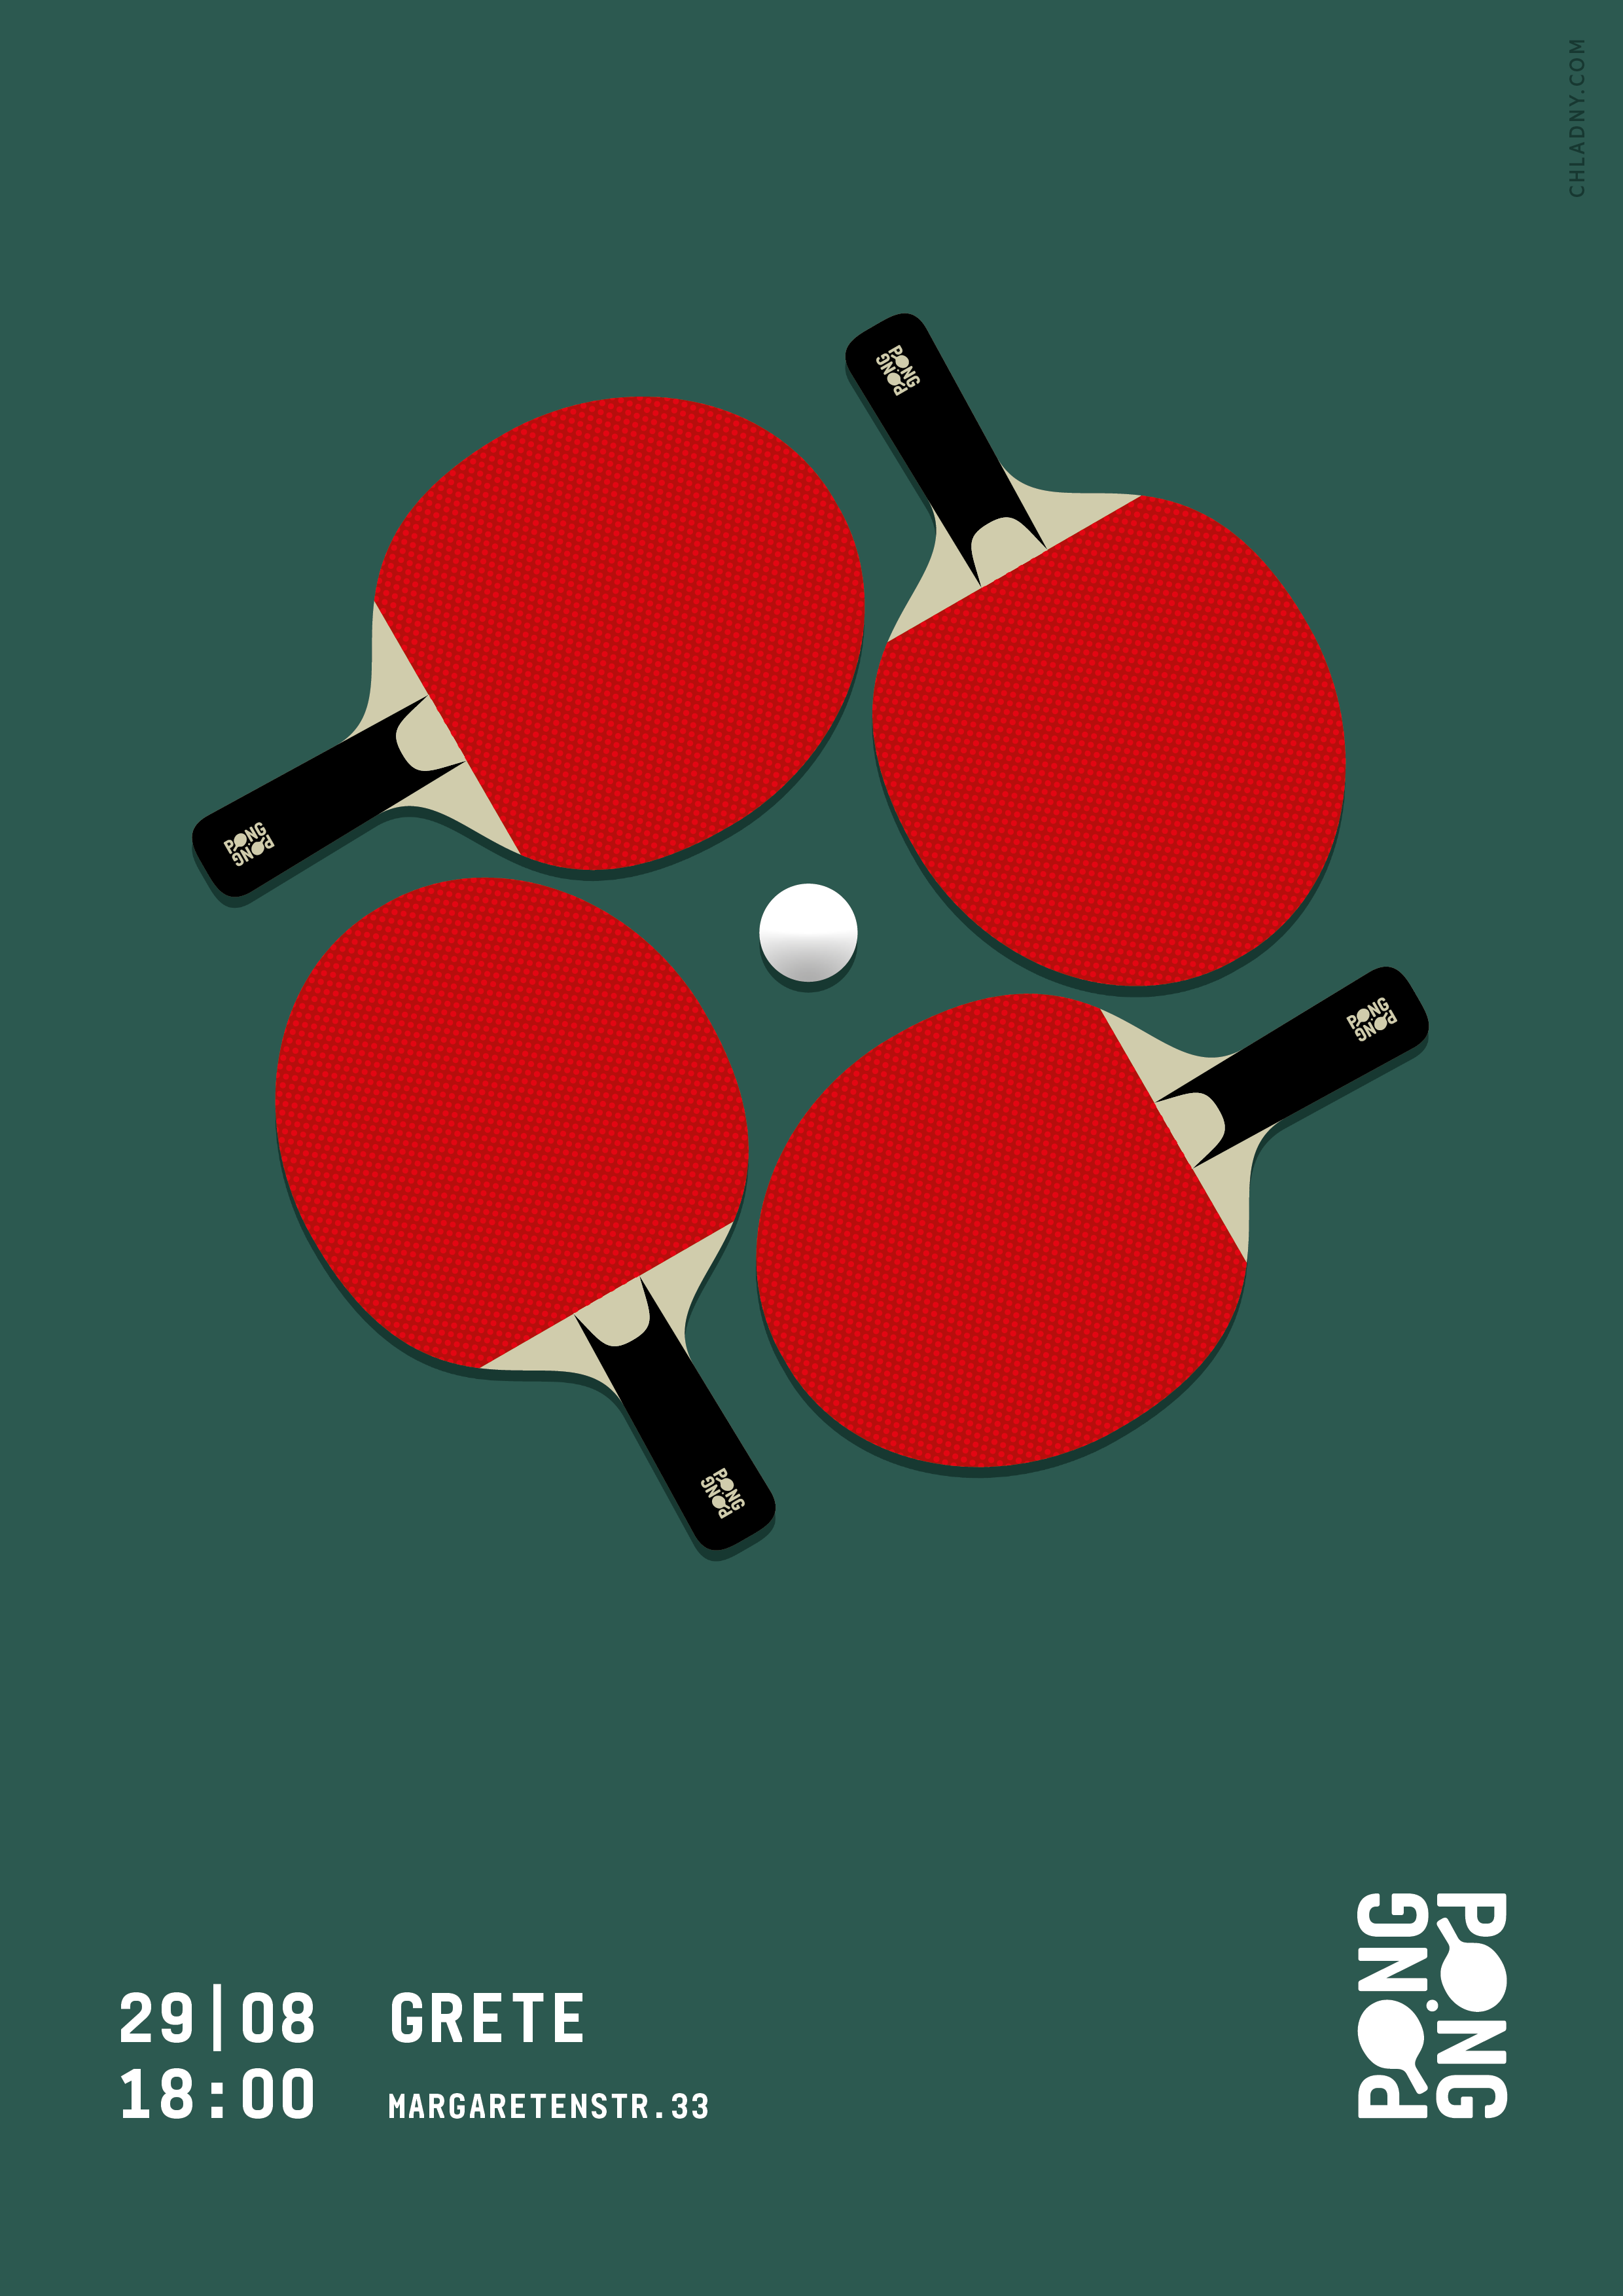 2016 Christian Chladny Www Chladny Com Ping Pong Table Tennis Poster Identit Graphic Design Posters Sports Illustrations Design Sport Poster Design